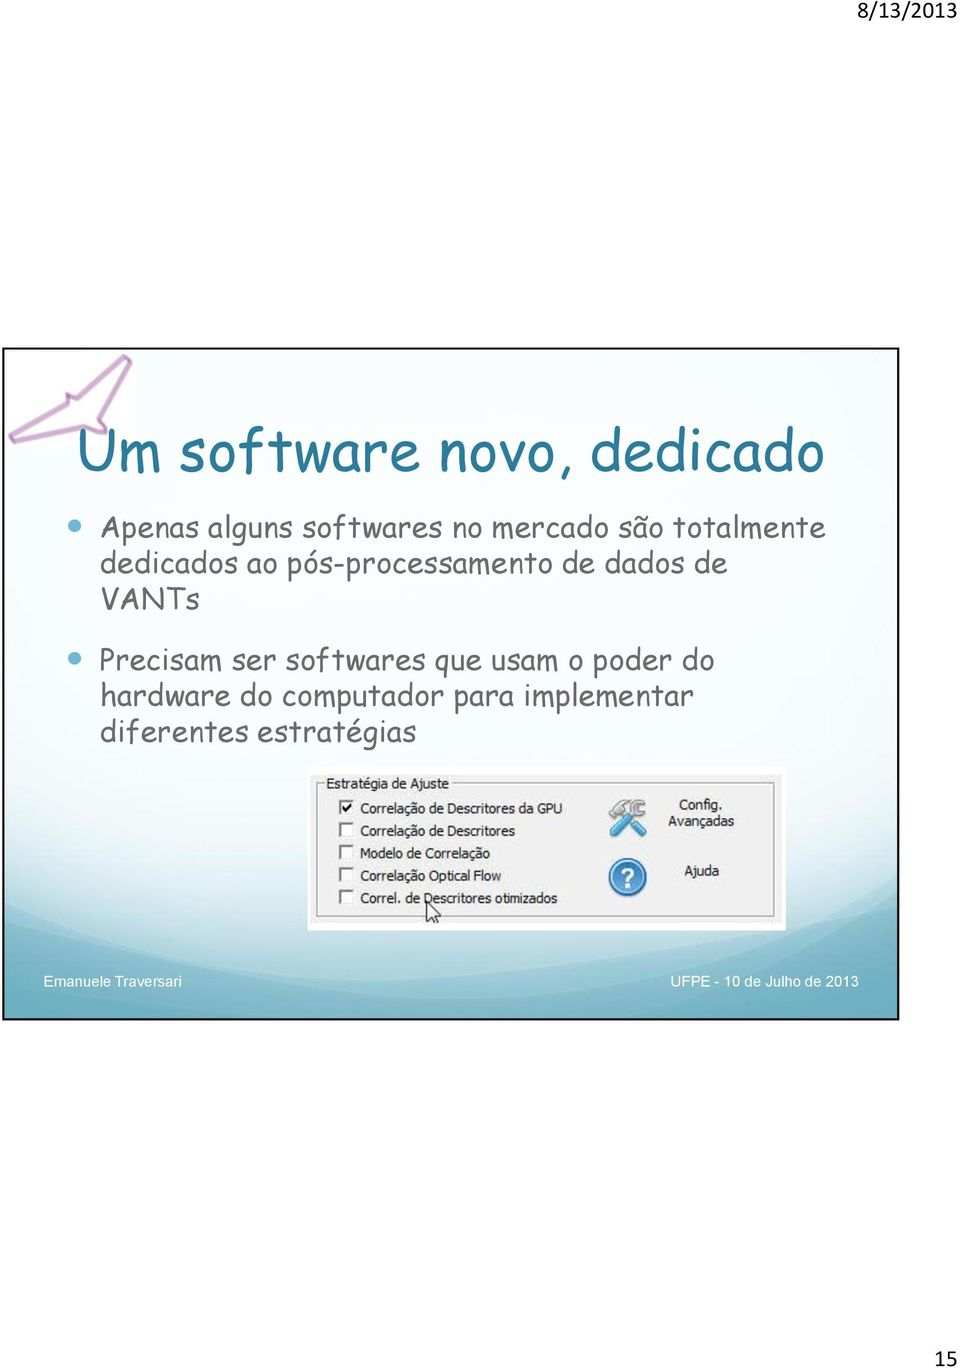 ser softwares que usam o poder do hardware do computador para